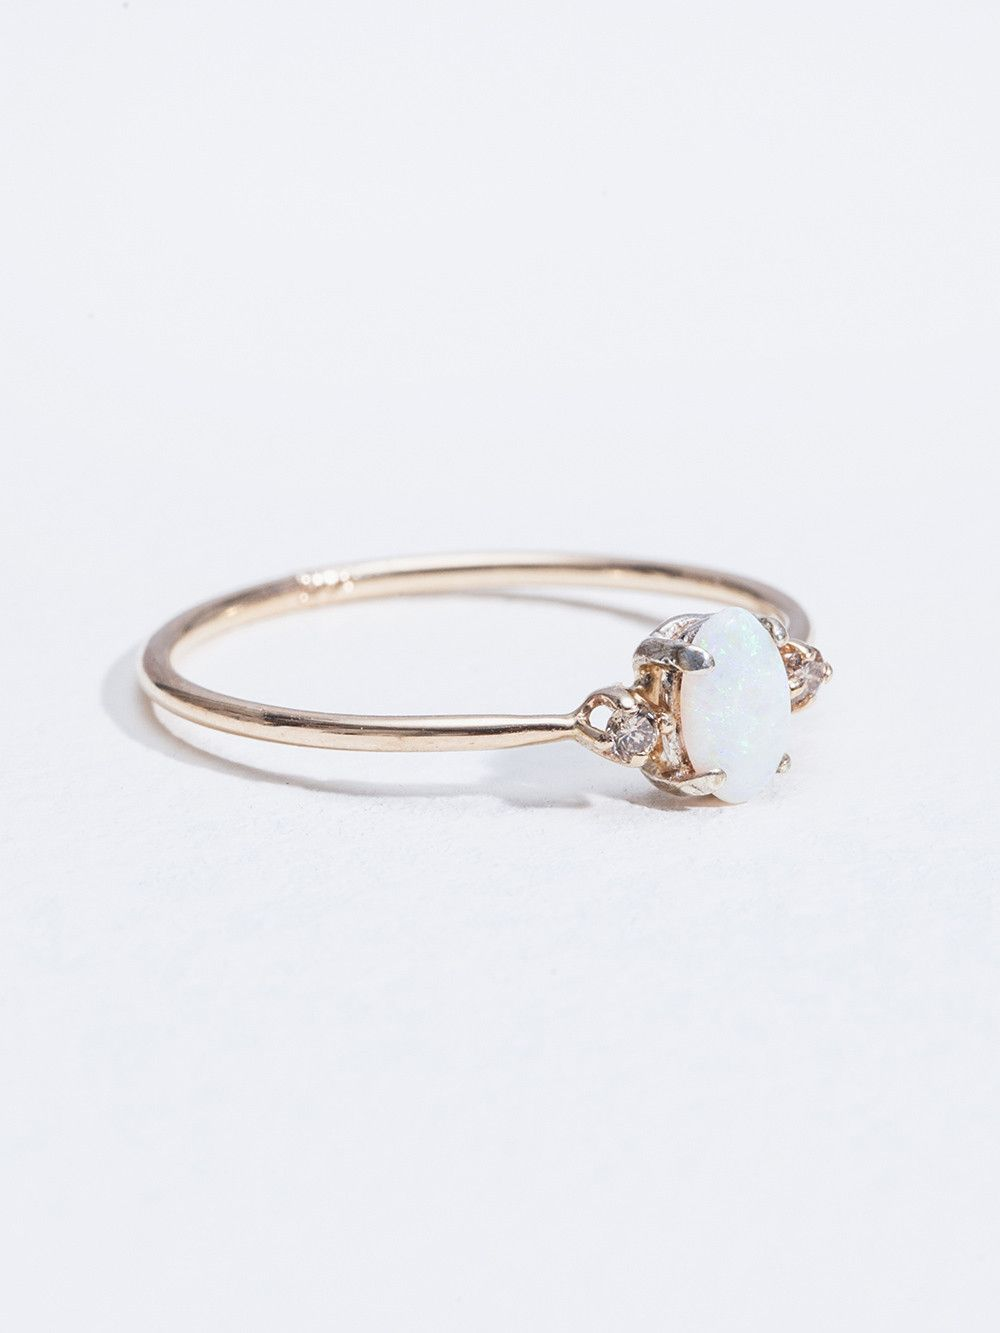 """Theresa M Lee, Opal Ring, Allison, Gold,  This ring is delicate and feminine, the champagne diamonds balance the pure white opal."" (quote) via thedrivenewyork.com"